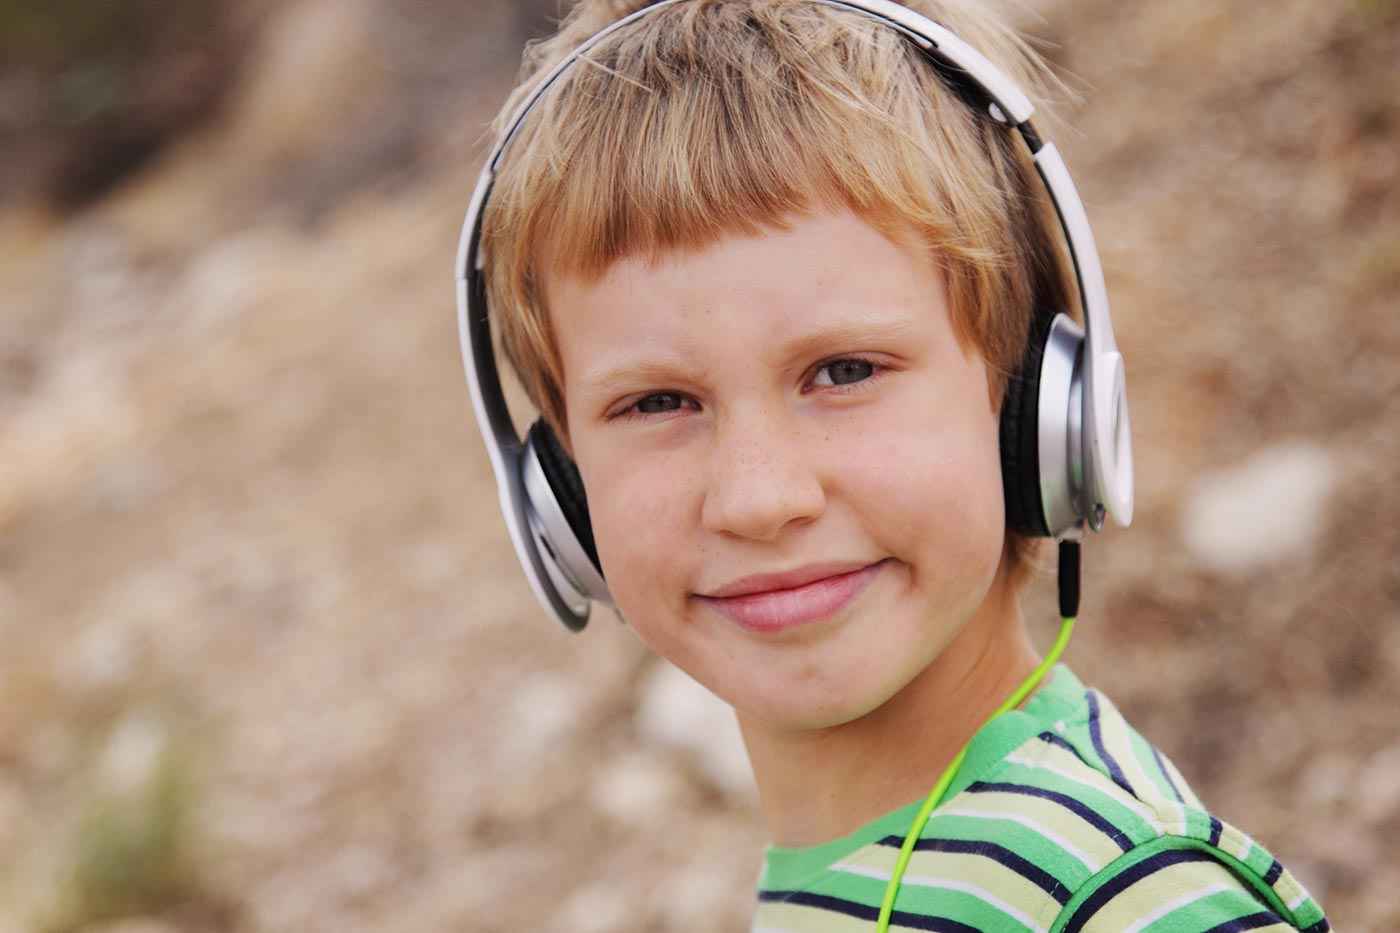 young boy wearing headphones